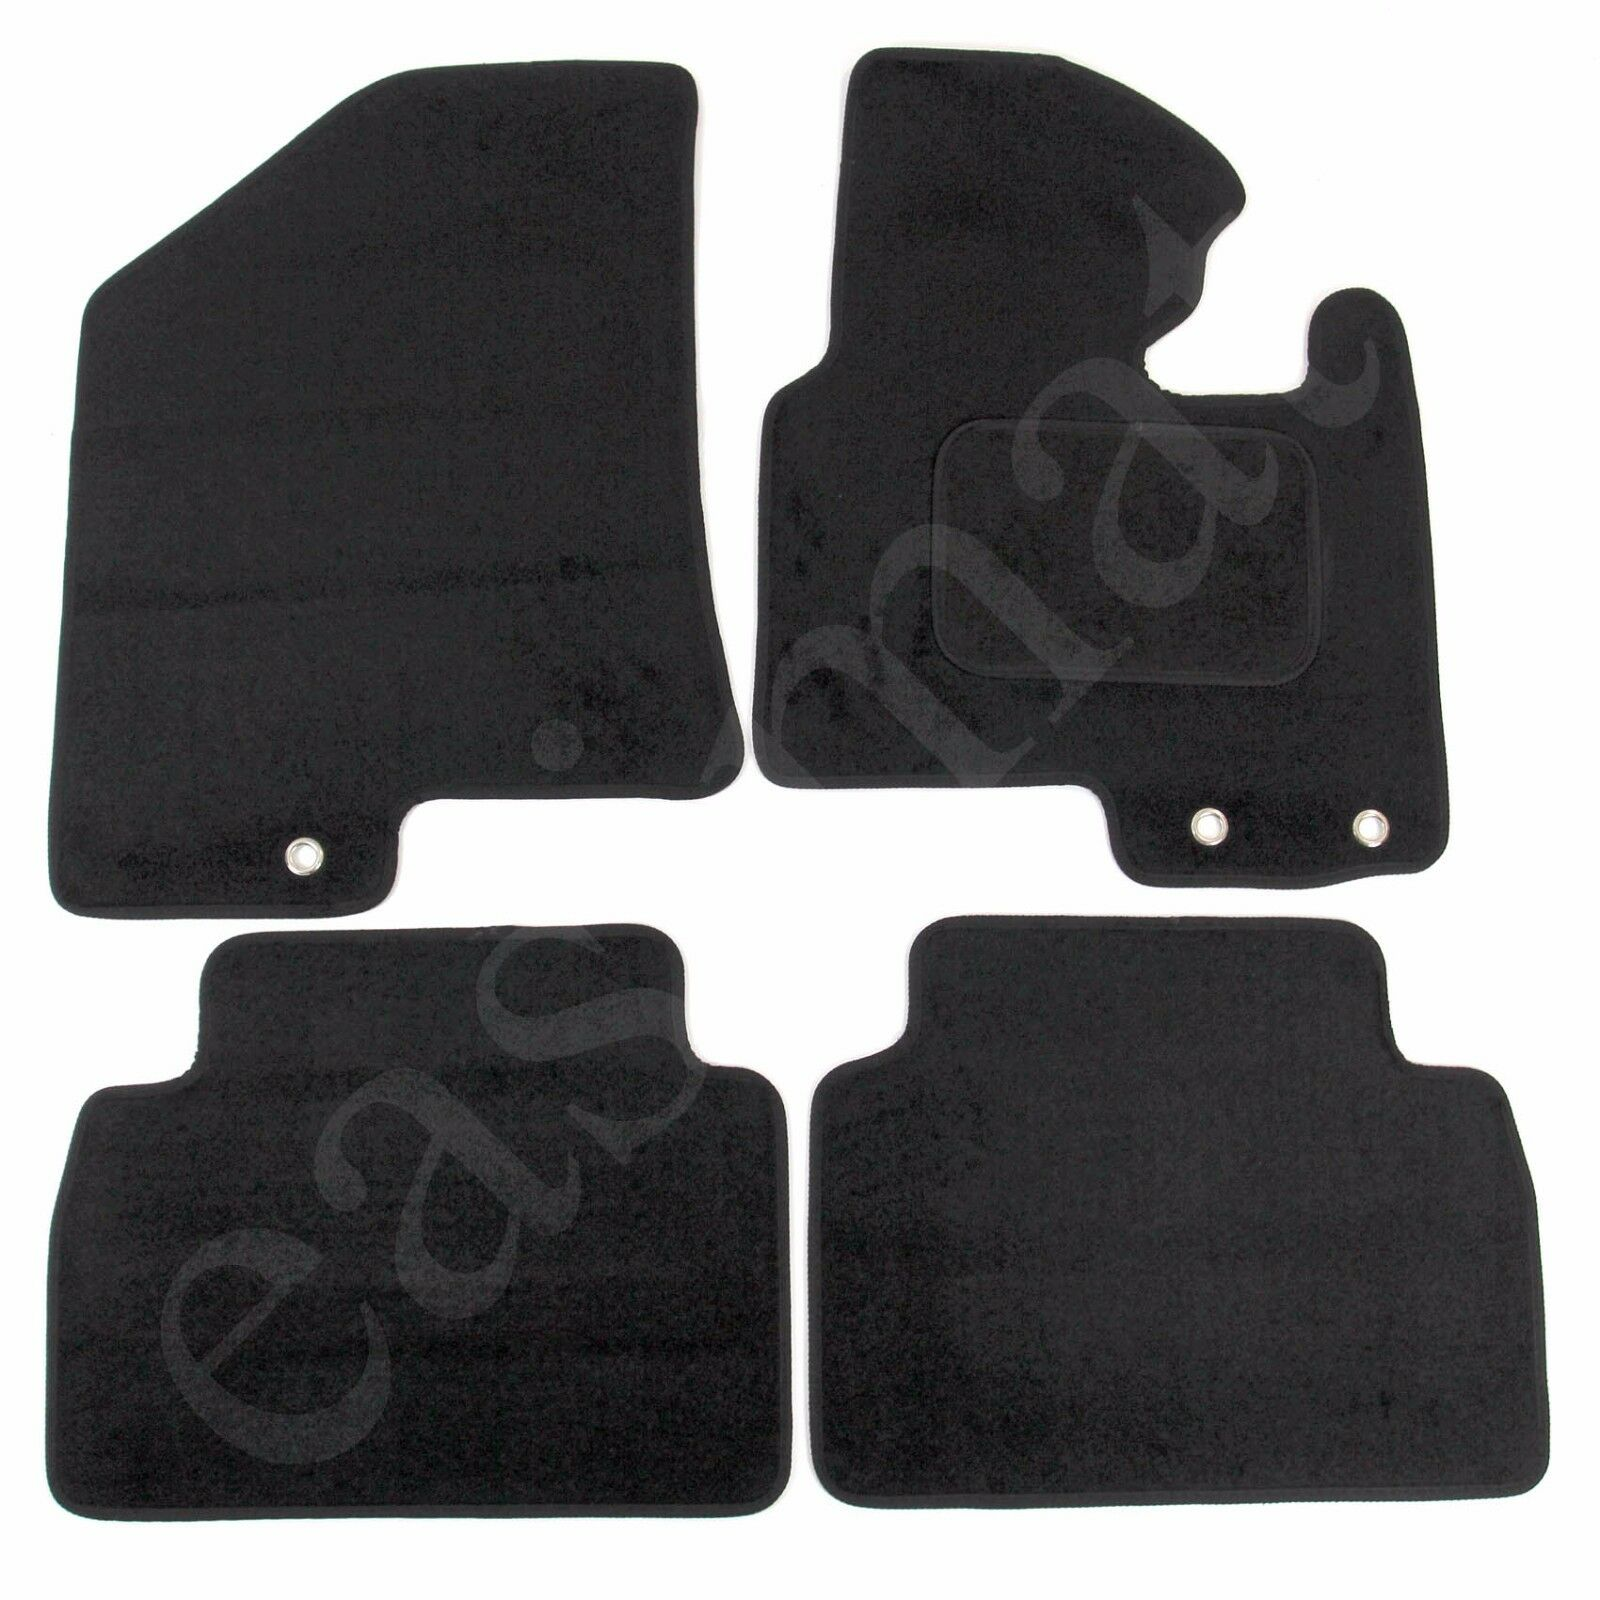 Car Parts - Fits Kia Sportage MK3 2010-2016 Tailored Carpet Car Mats Black 4pcs Floor Set